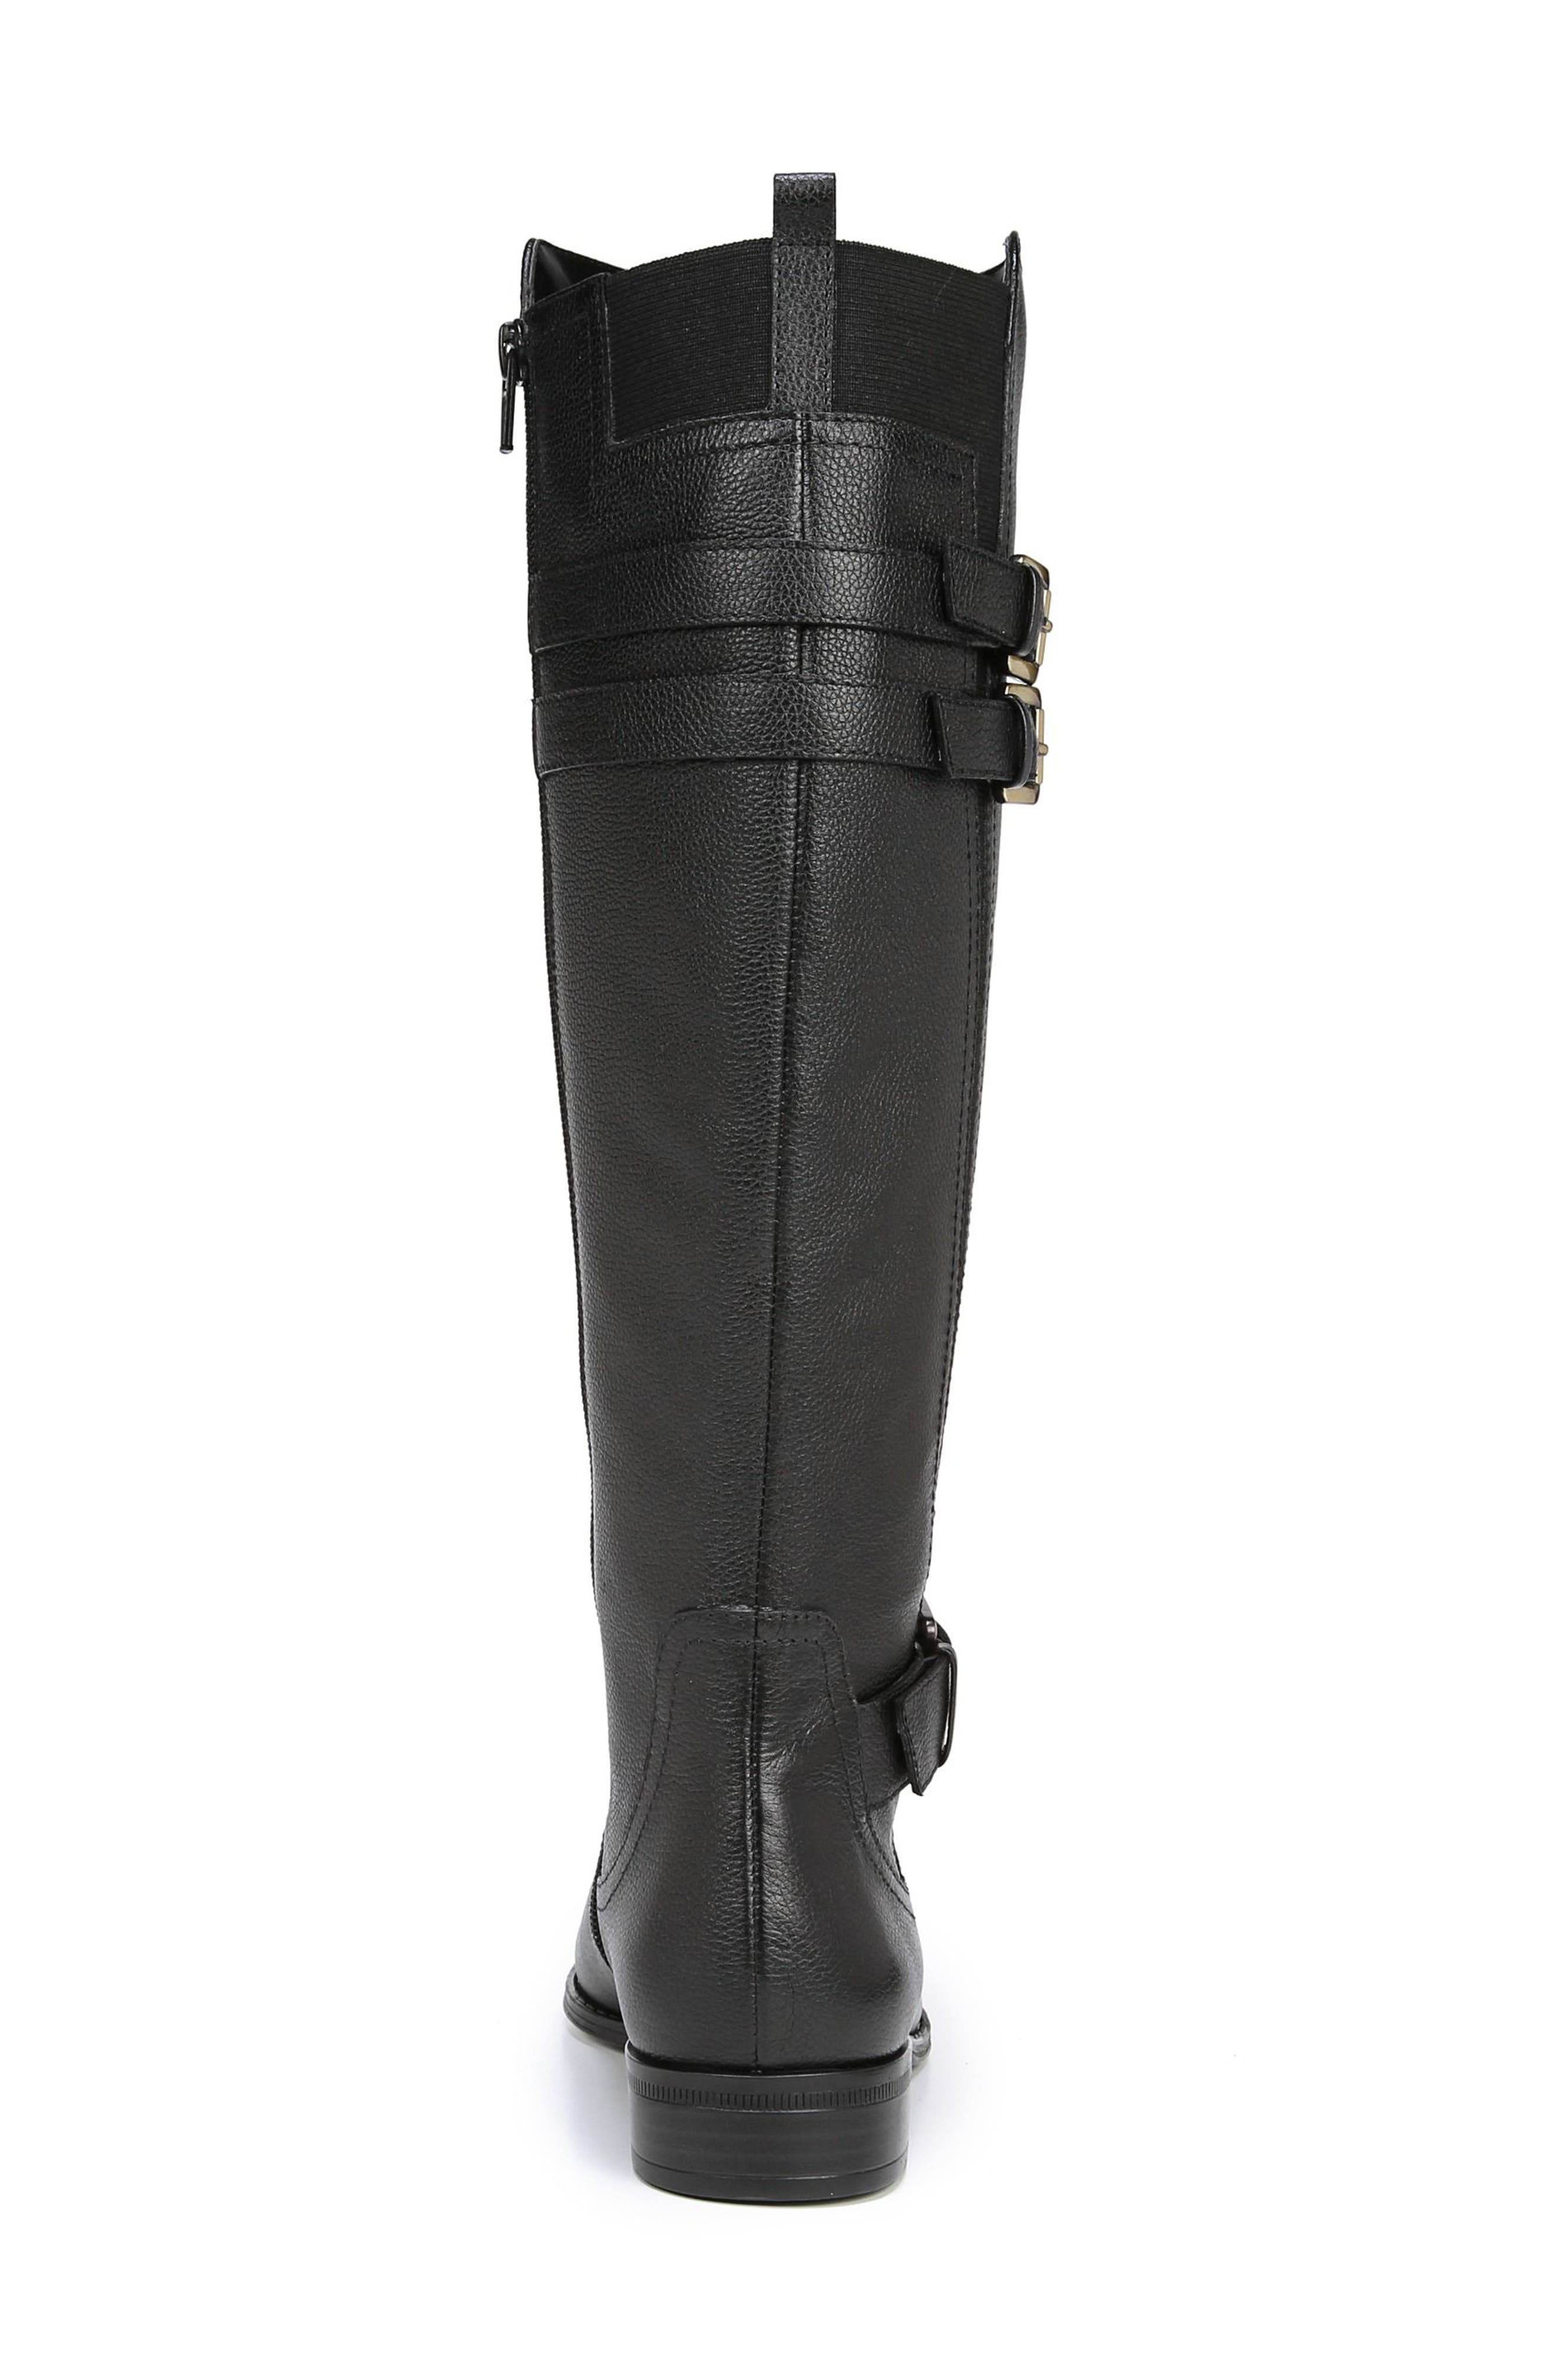 Jessie Knee High Riding Boot,                             Alternate thumbnail 7, color,                             BLACK LEATHER